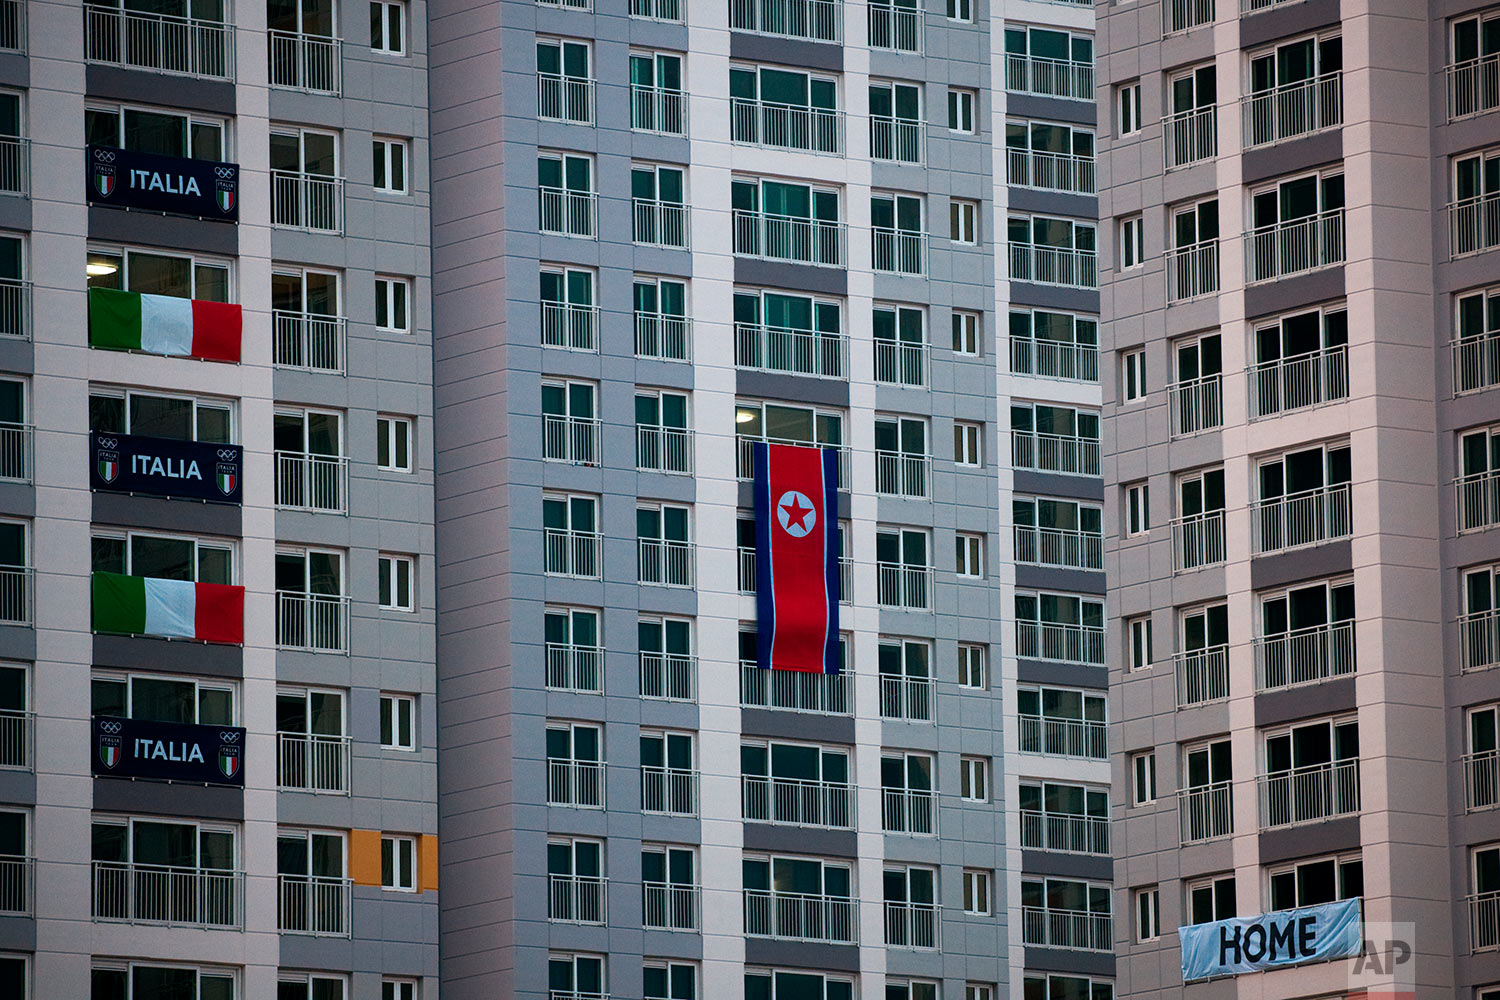 A large North Korean flag hangs from an apartment building at the Olympic Village prior to the 2018 Winter Olympics in Gangneung, South Korea, Friday, Feb. 2, 2018. (AP Photo/Jae C. Hong)